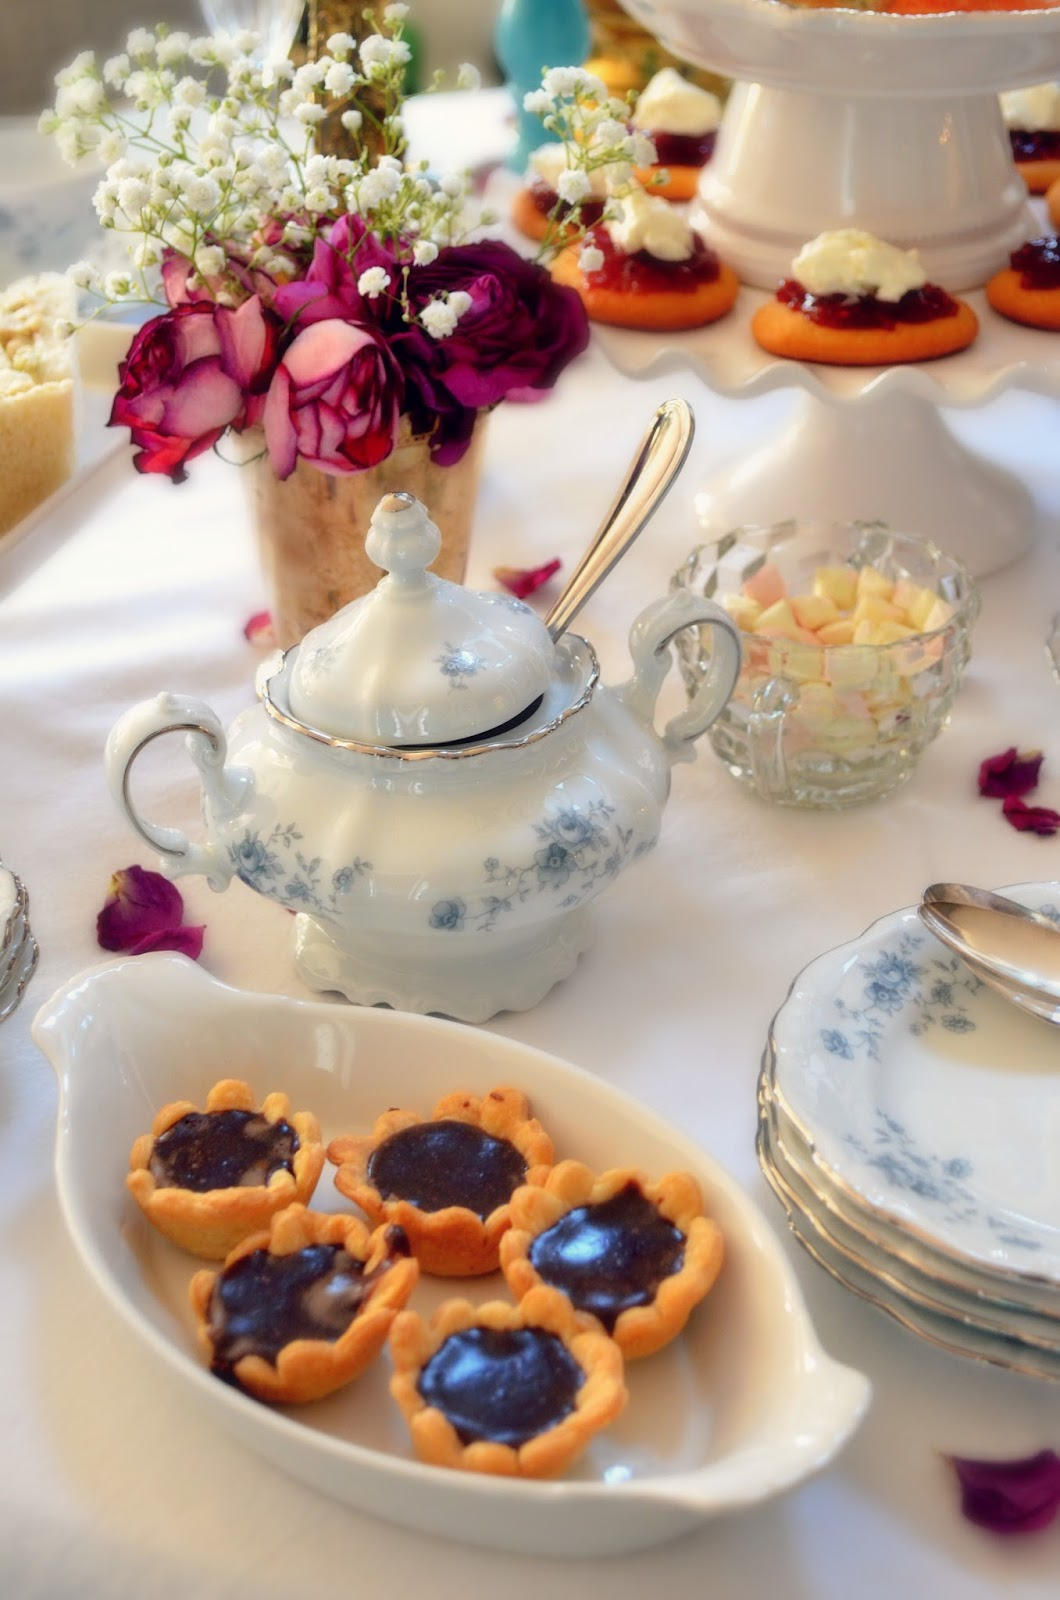 3 Simple How-To Tips for Hosting An Afternoon High Tea with Veuve Clicquot Champagne